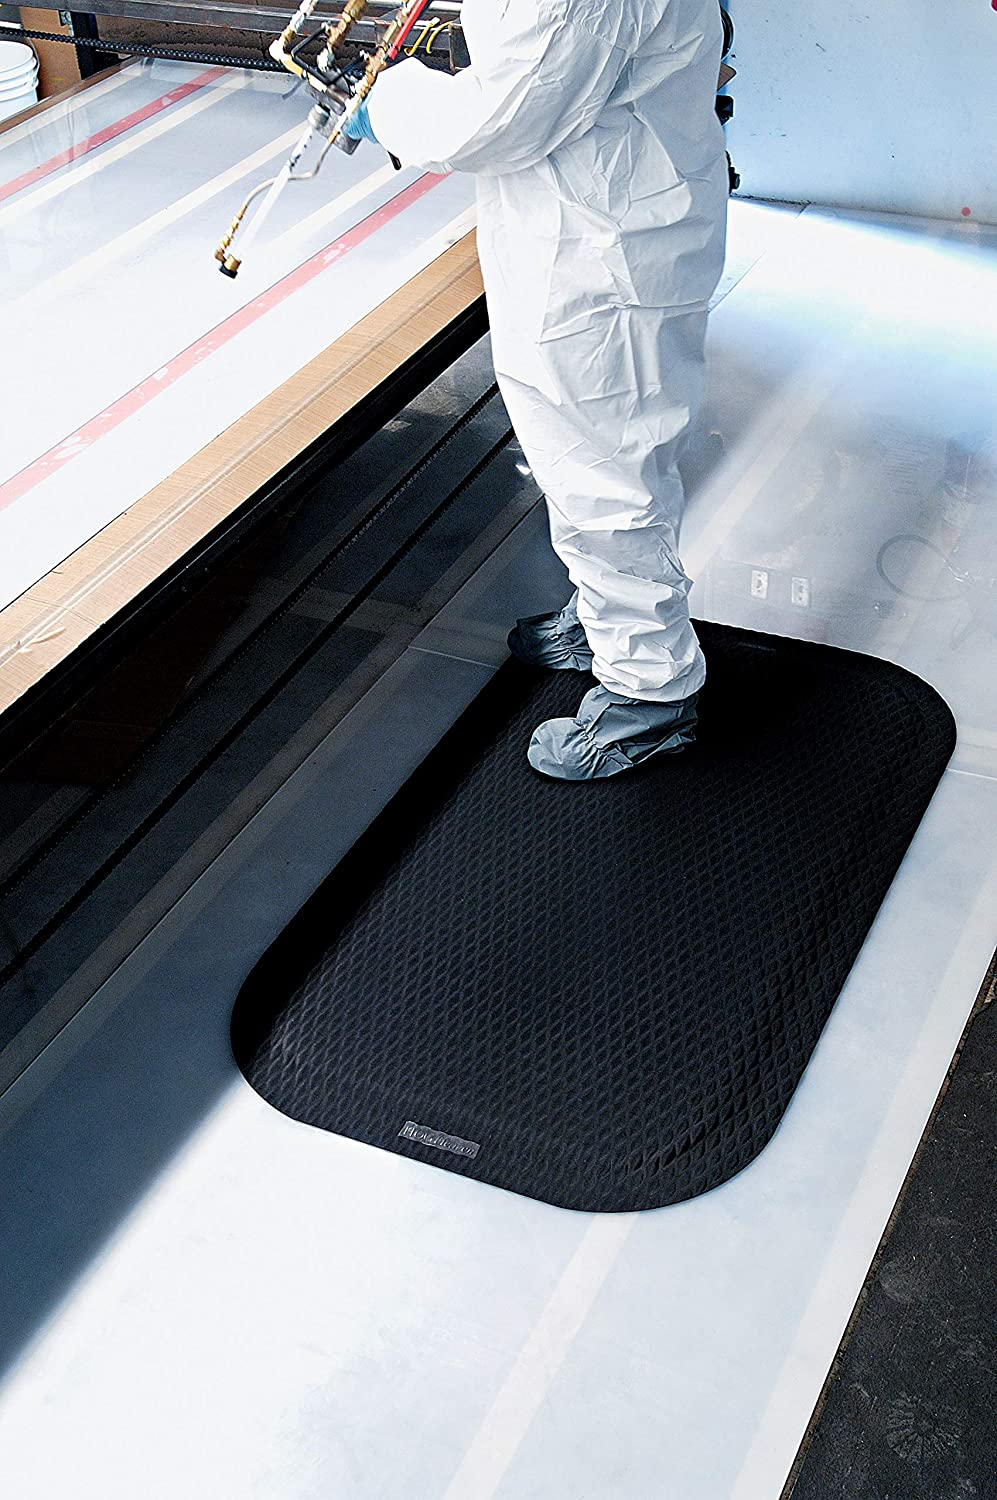 Hog Heaven Ergonomic Anti-Fatigue Mat 7//8 5 Length x 3 Width x Black by M+A Matting The Andersen Company 422-BLKBO-5F 3F